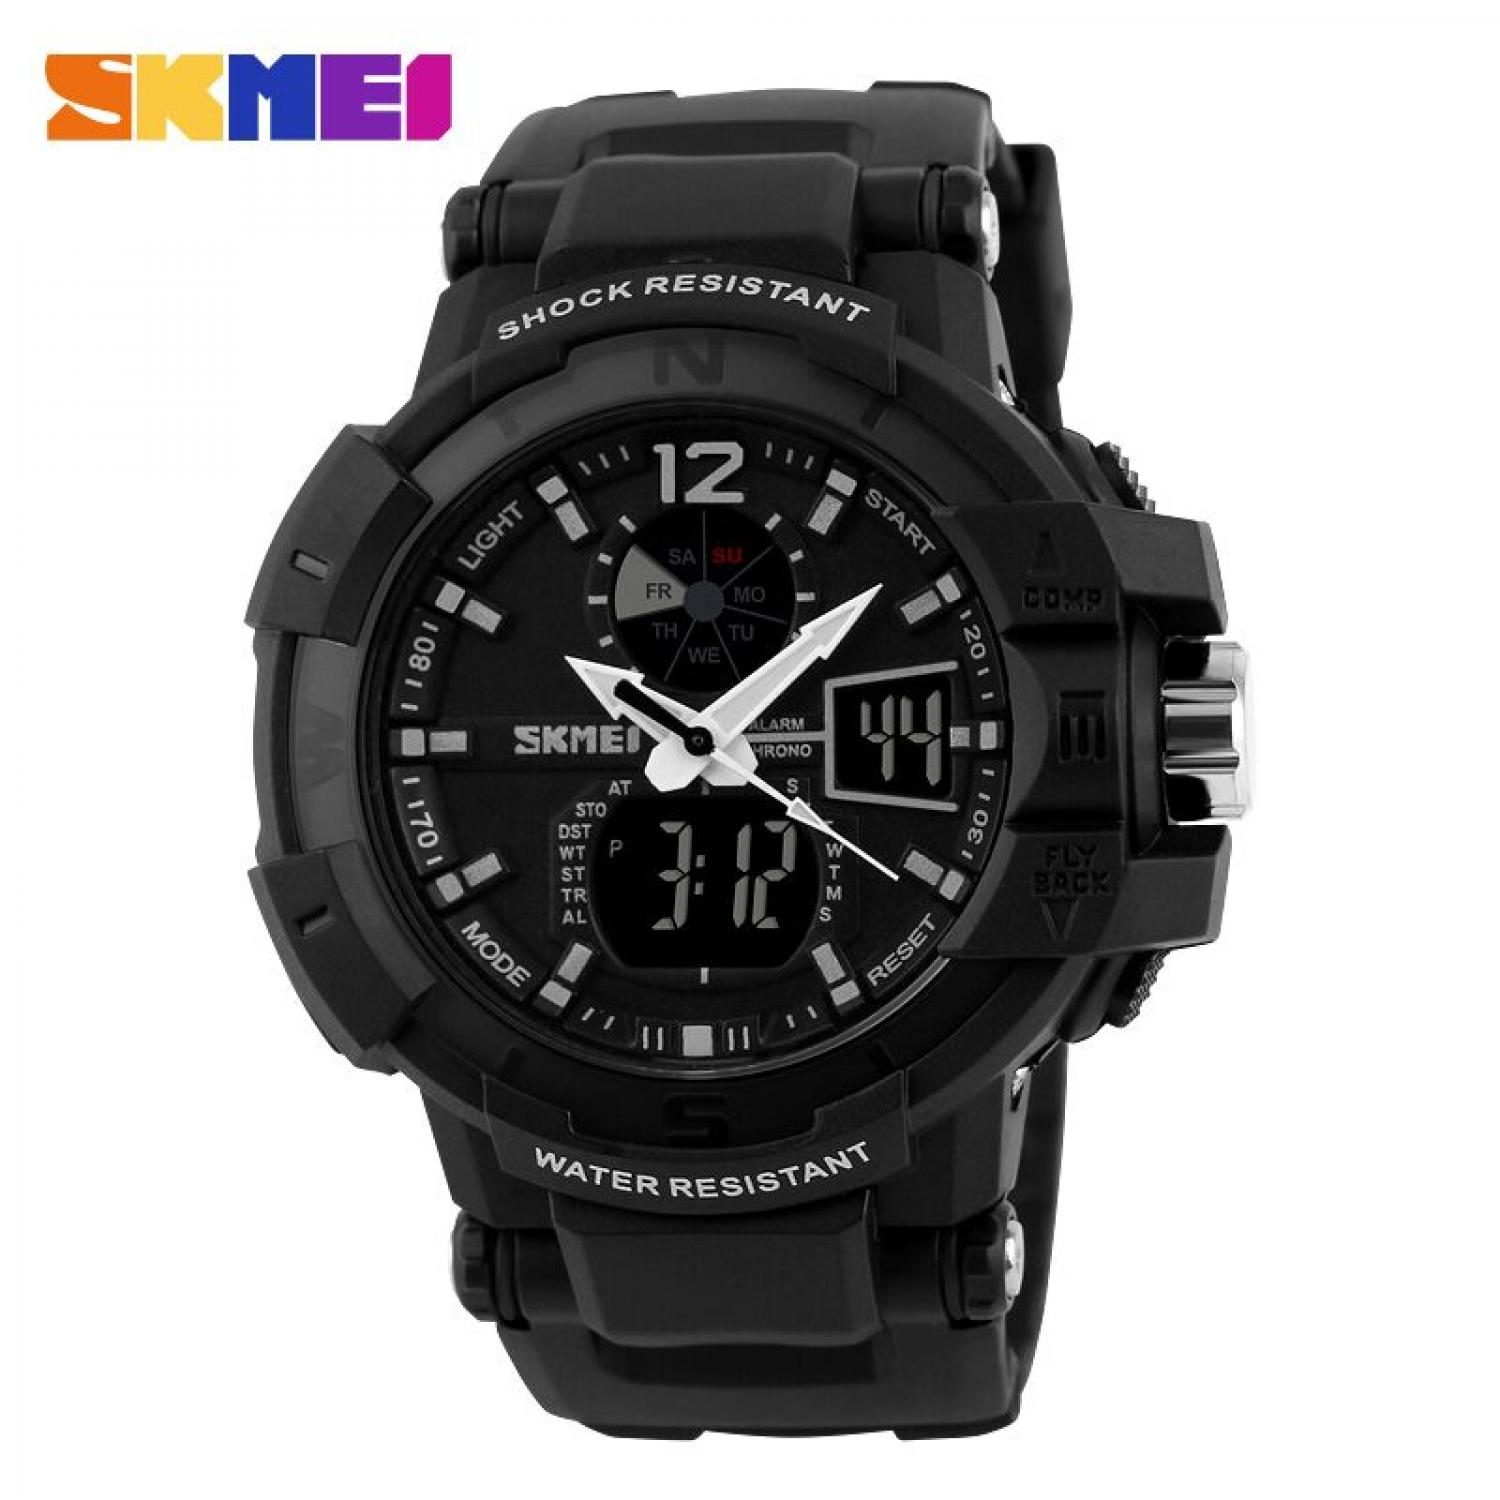 chinese-brand-watch-skmei-skone-megir-etc